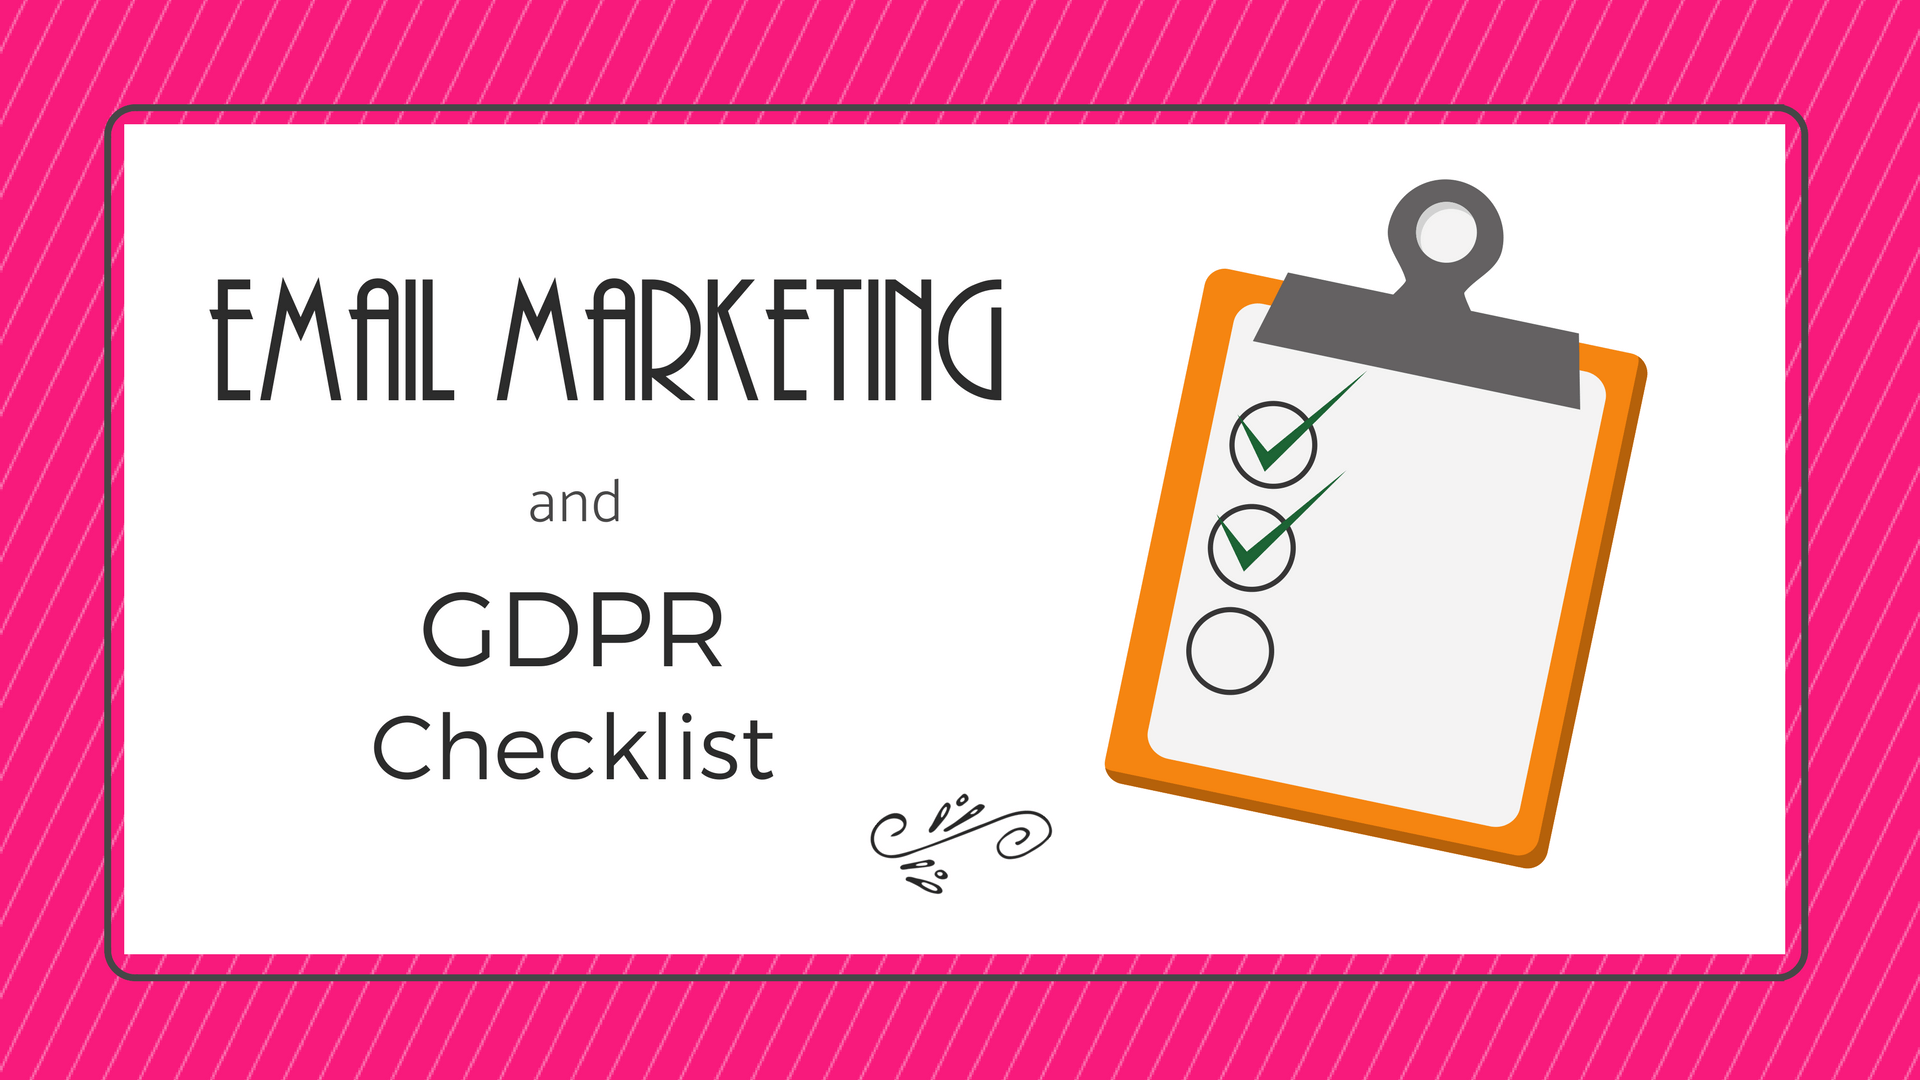 GDPR Email Marketing Checklist.png